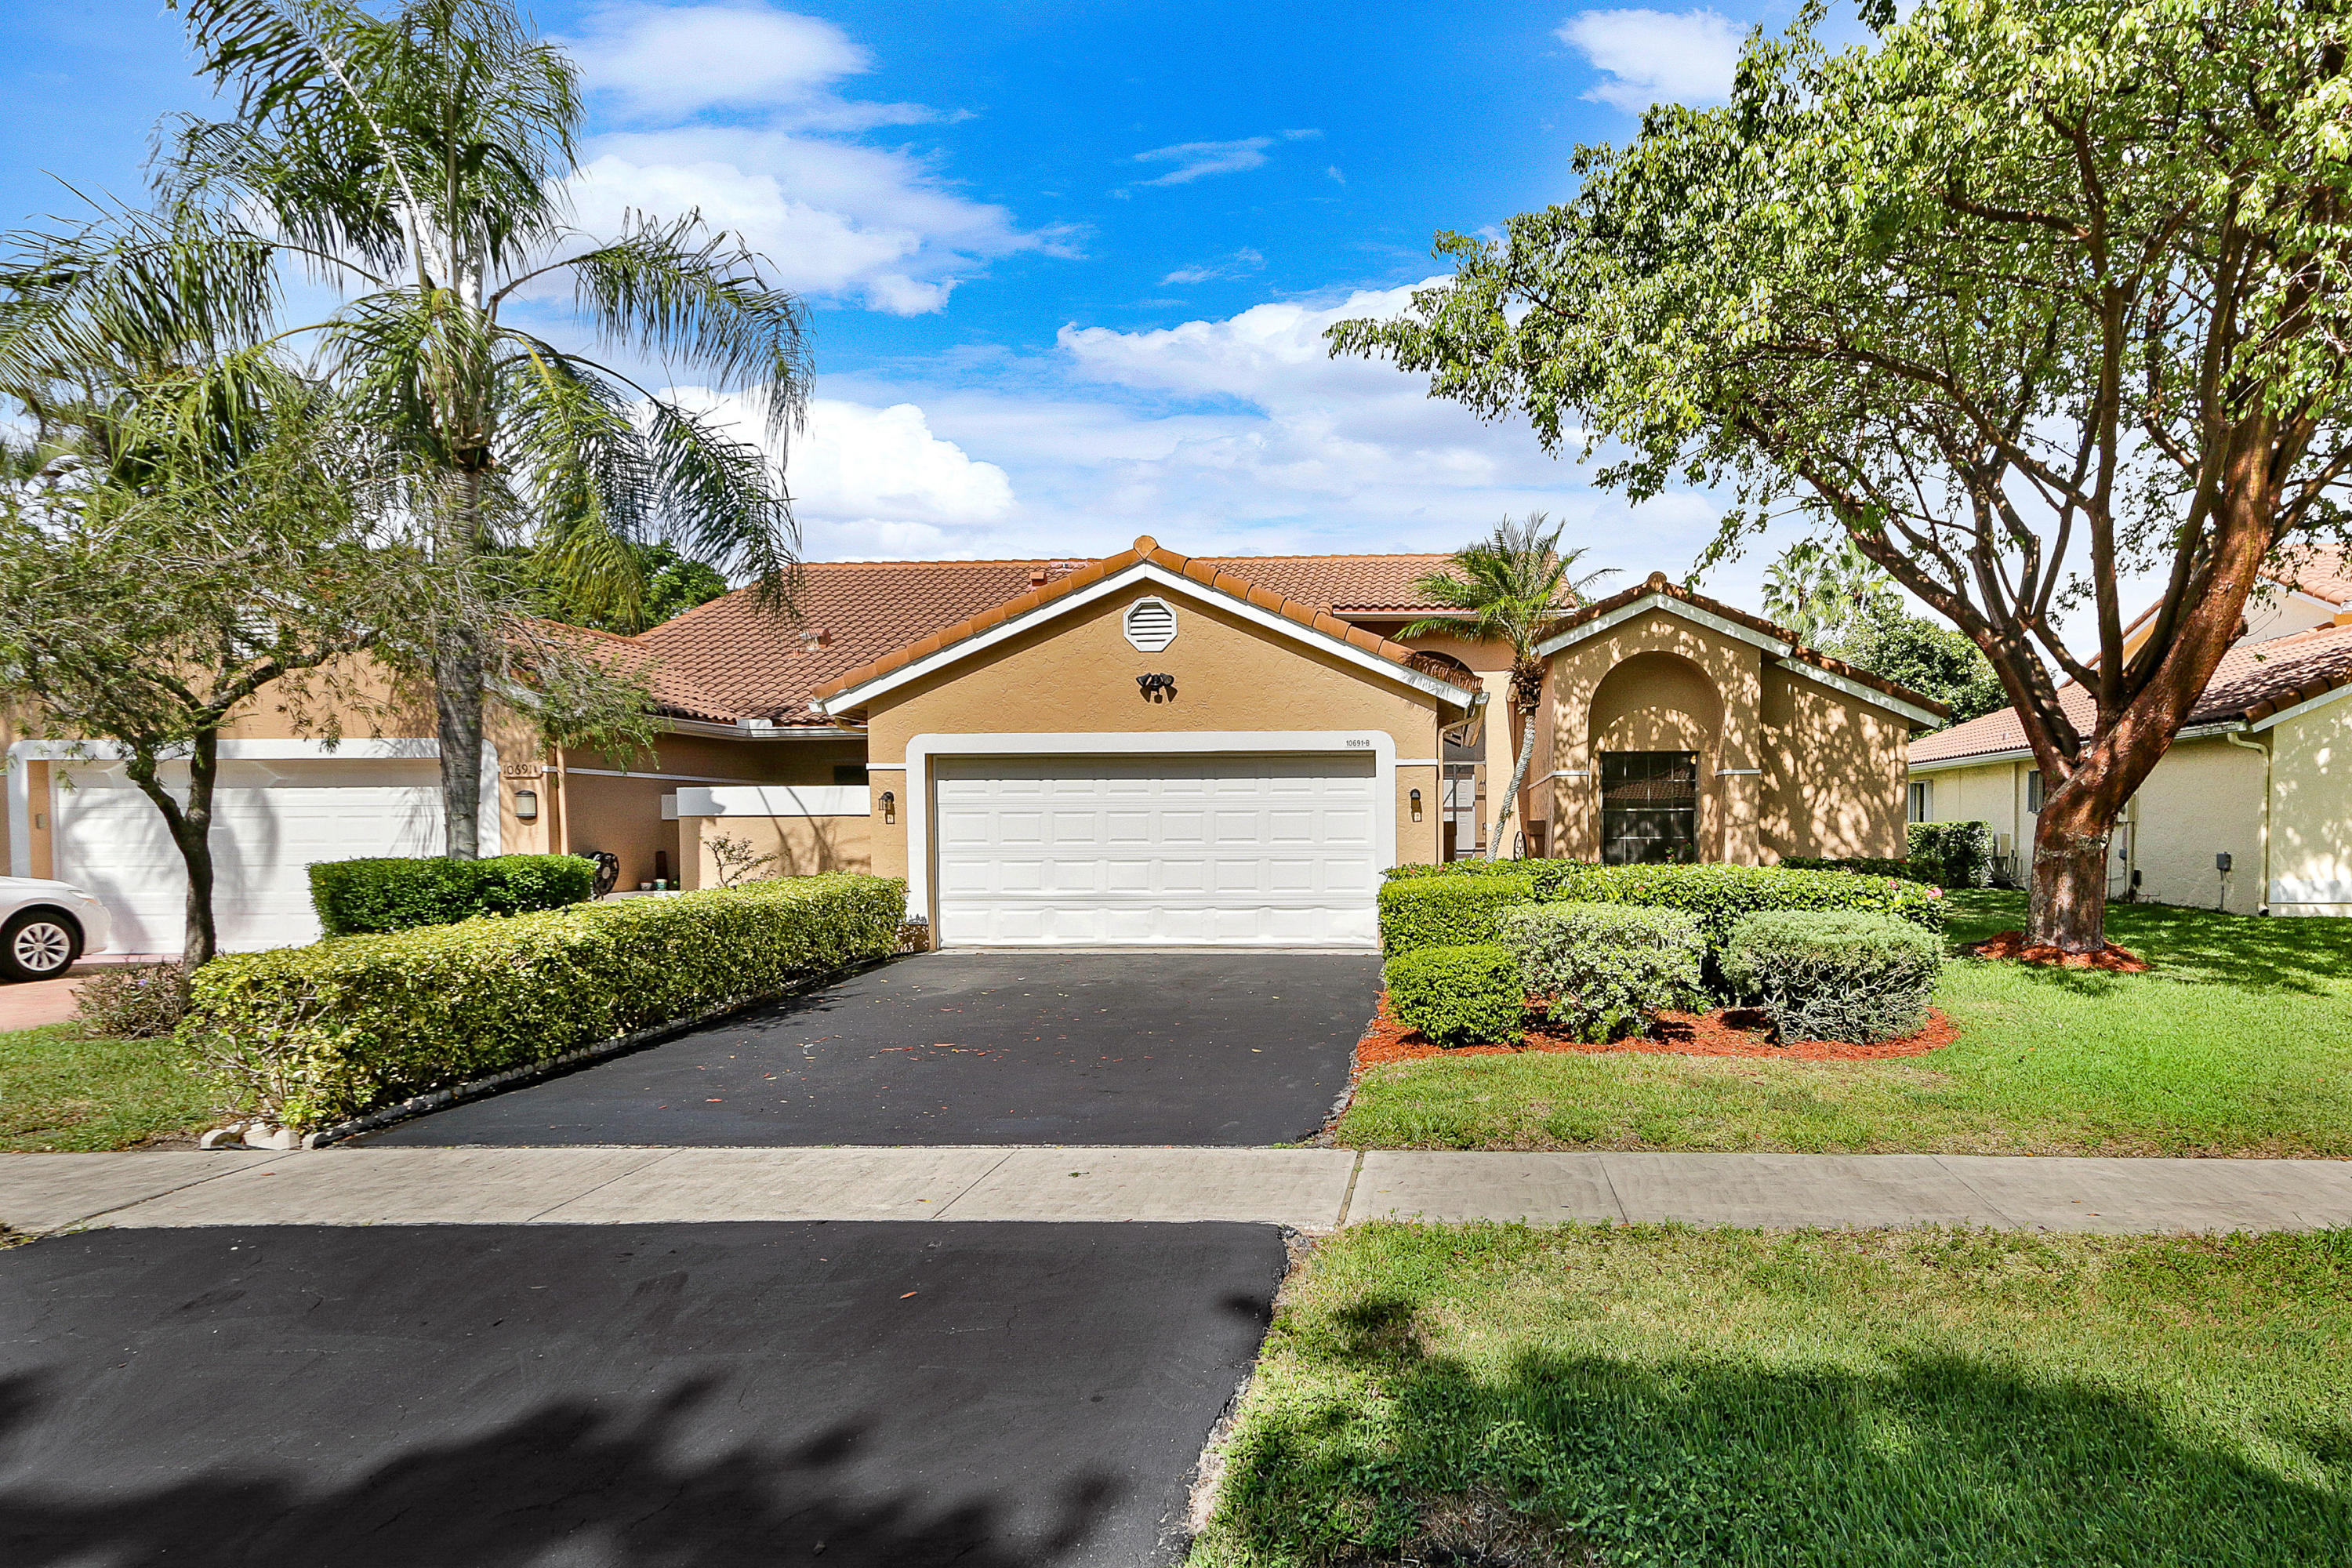 Home for sale in Ladypalm Of Waterbery Boca Raton Florida